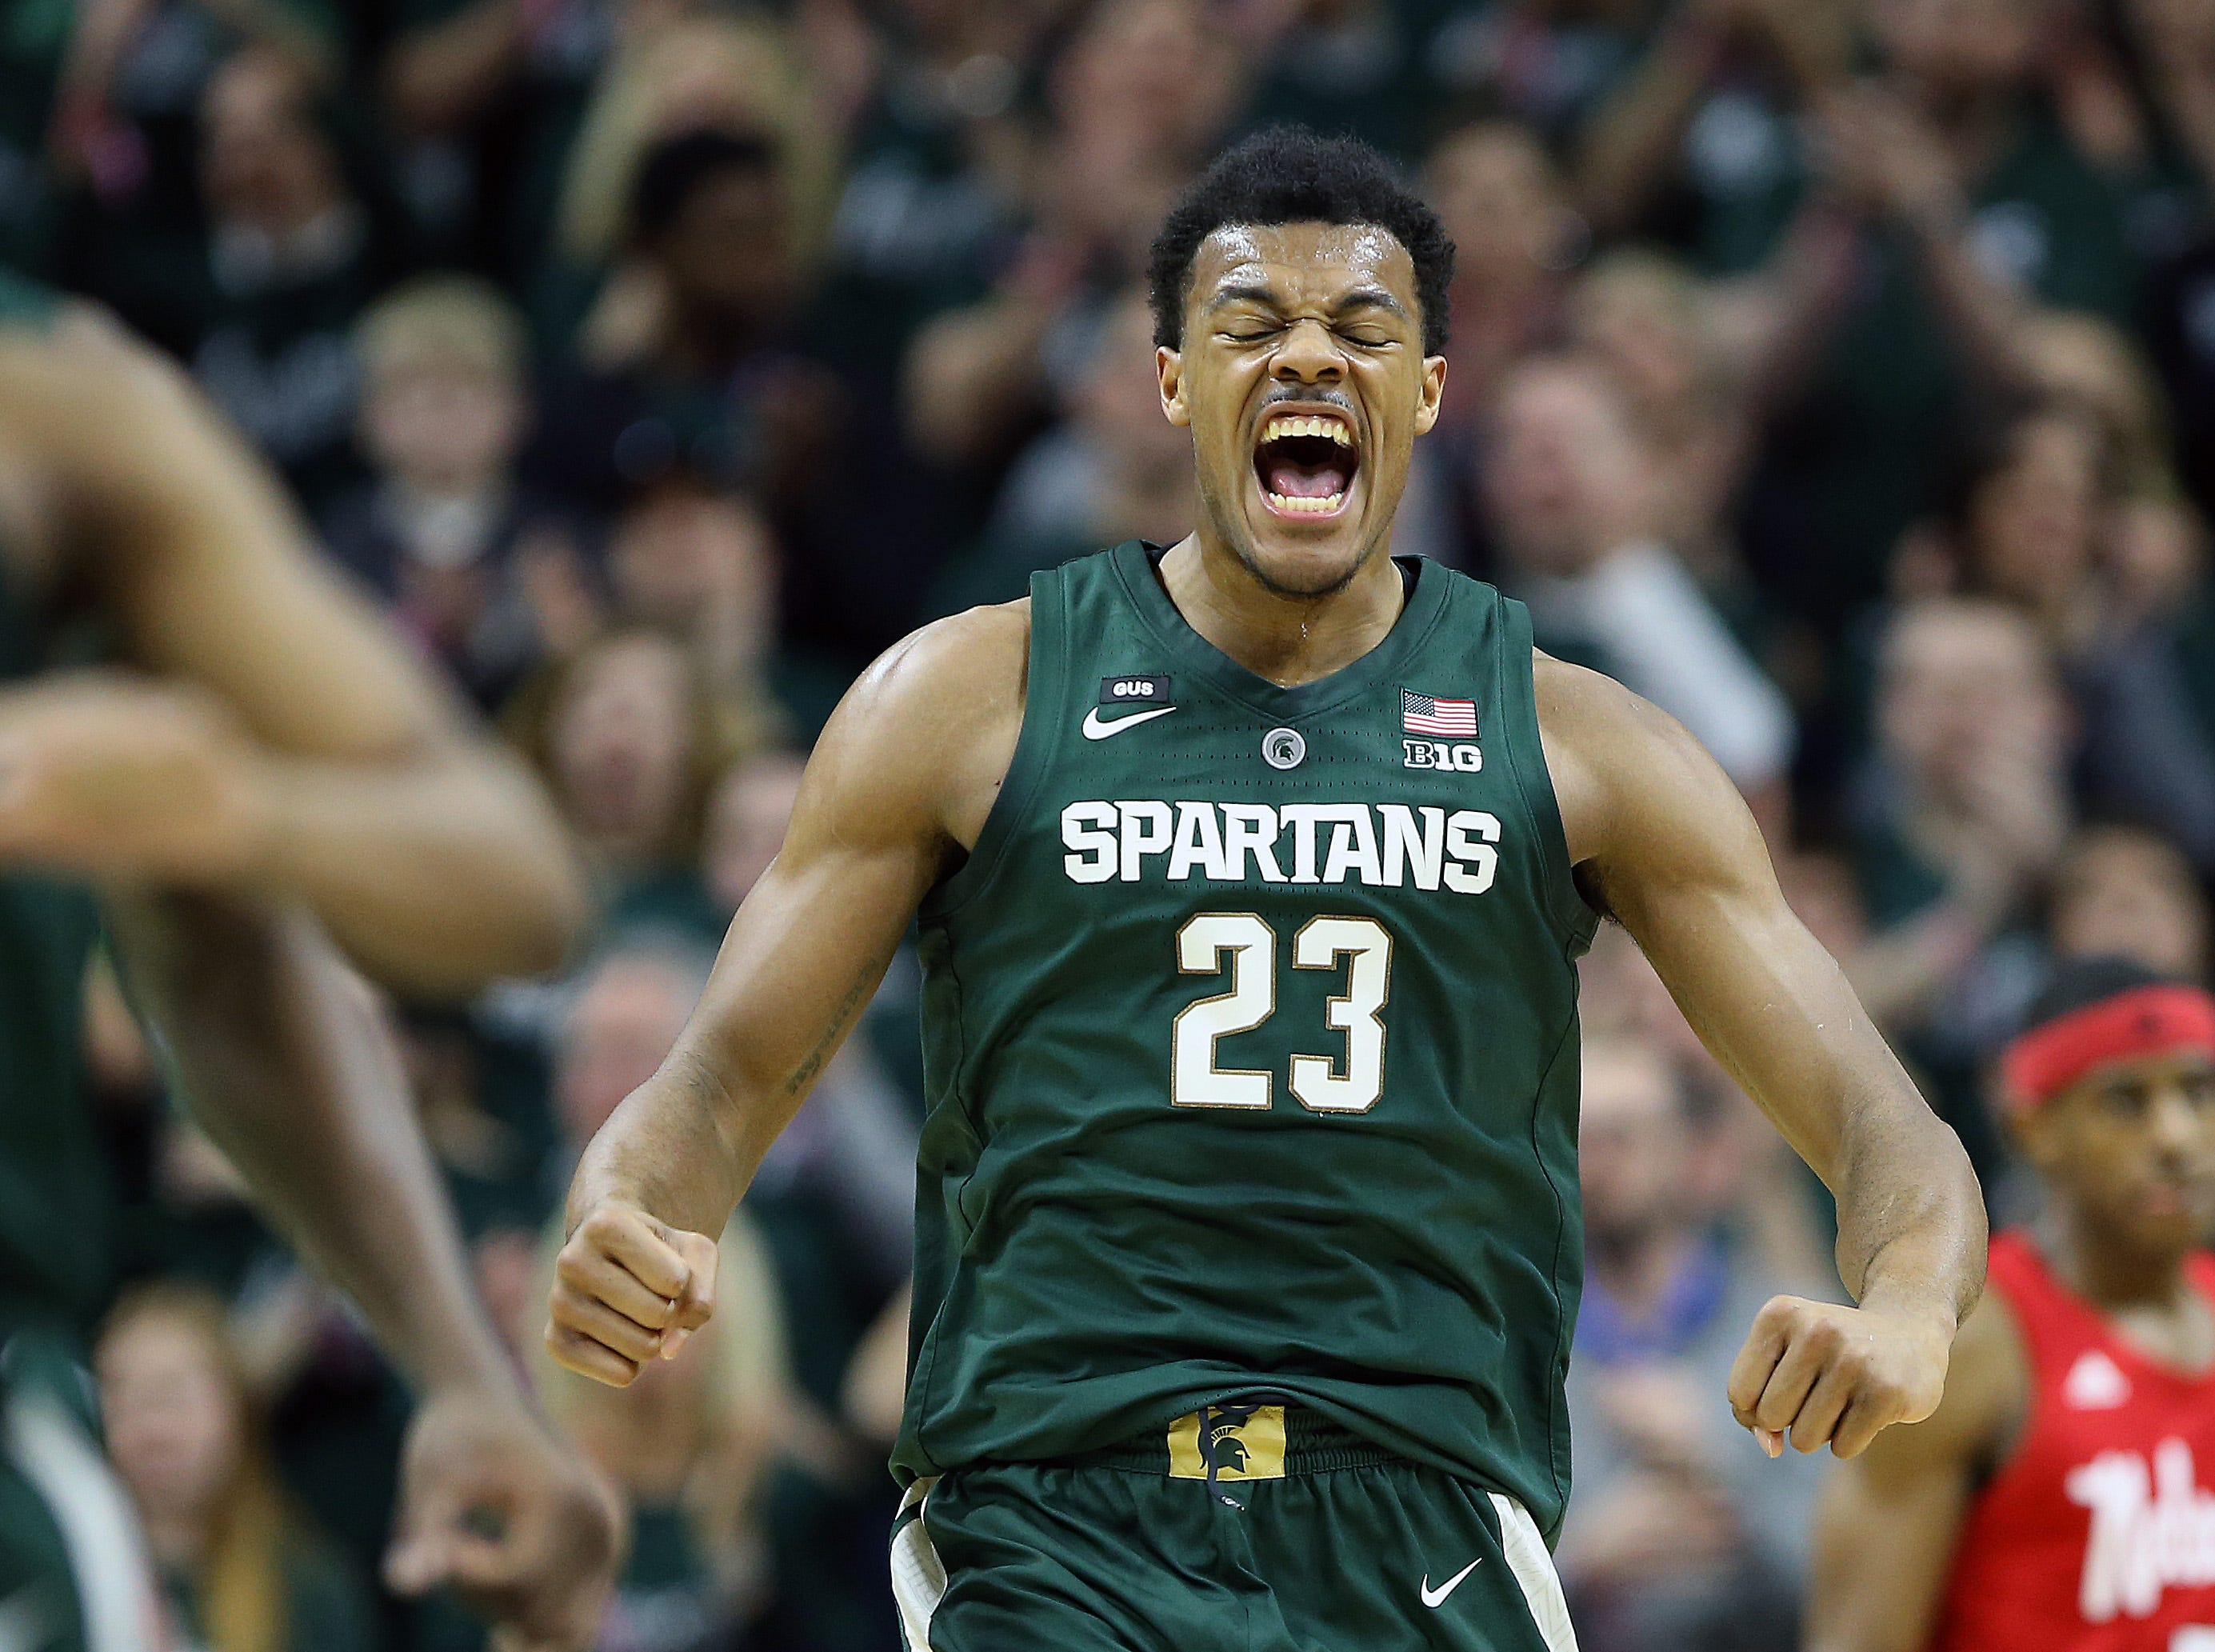 Mar 5, 2019; East Lansing, MI, USA; Michigan State Spartans forward Xavier Tillman (23) reacts during the first half of a game against the Nebraska Cornhuskers at the Breslin Center. Mandatory Credit: Mike Carter-USA TODAY Sports